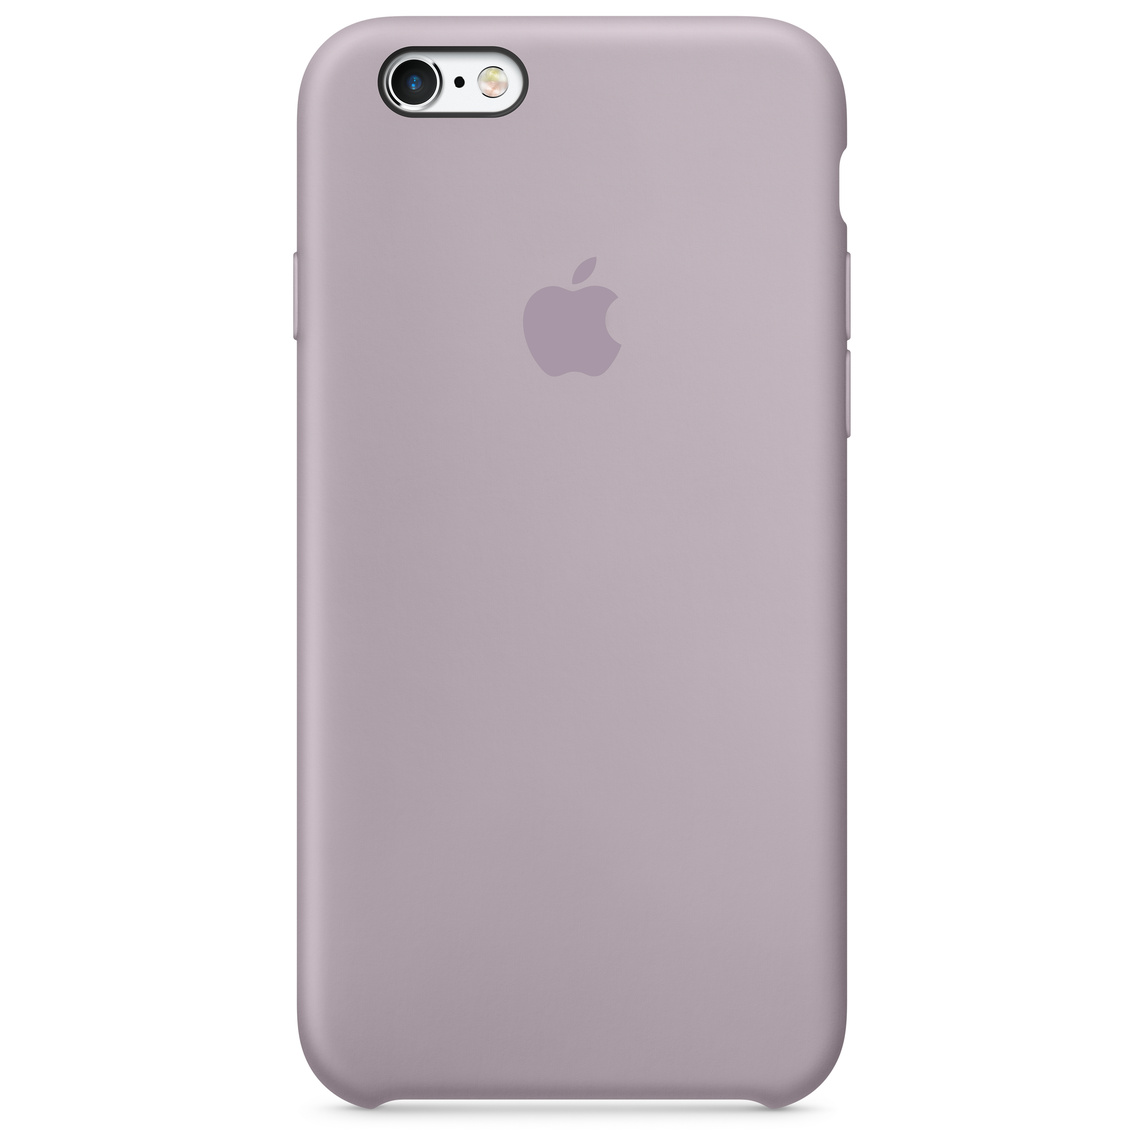 quality design 1af02 22709 iPhone 6 / 6s Silicone Case - Lavender